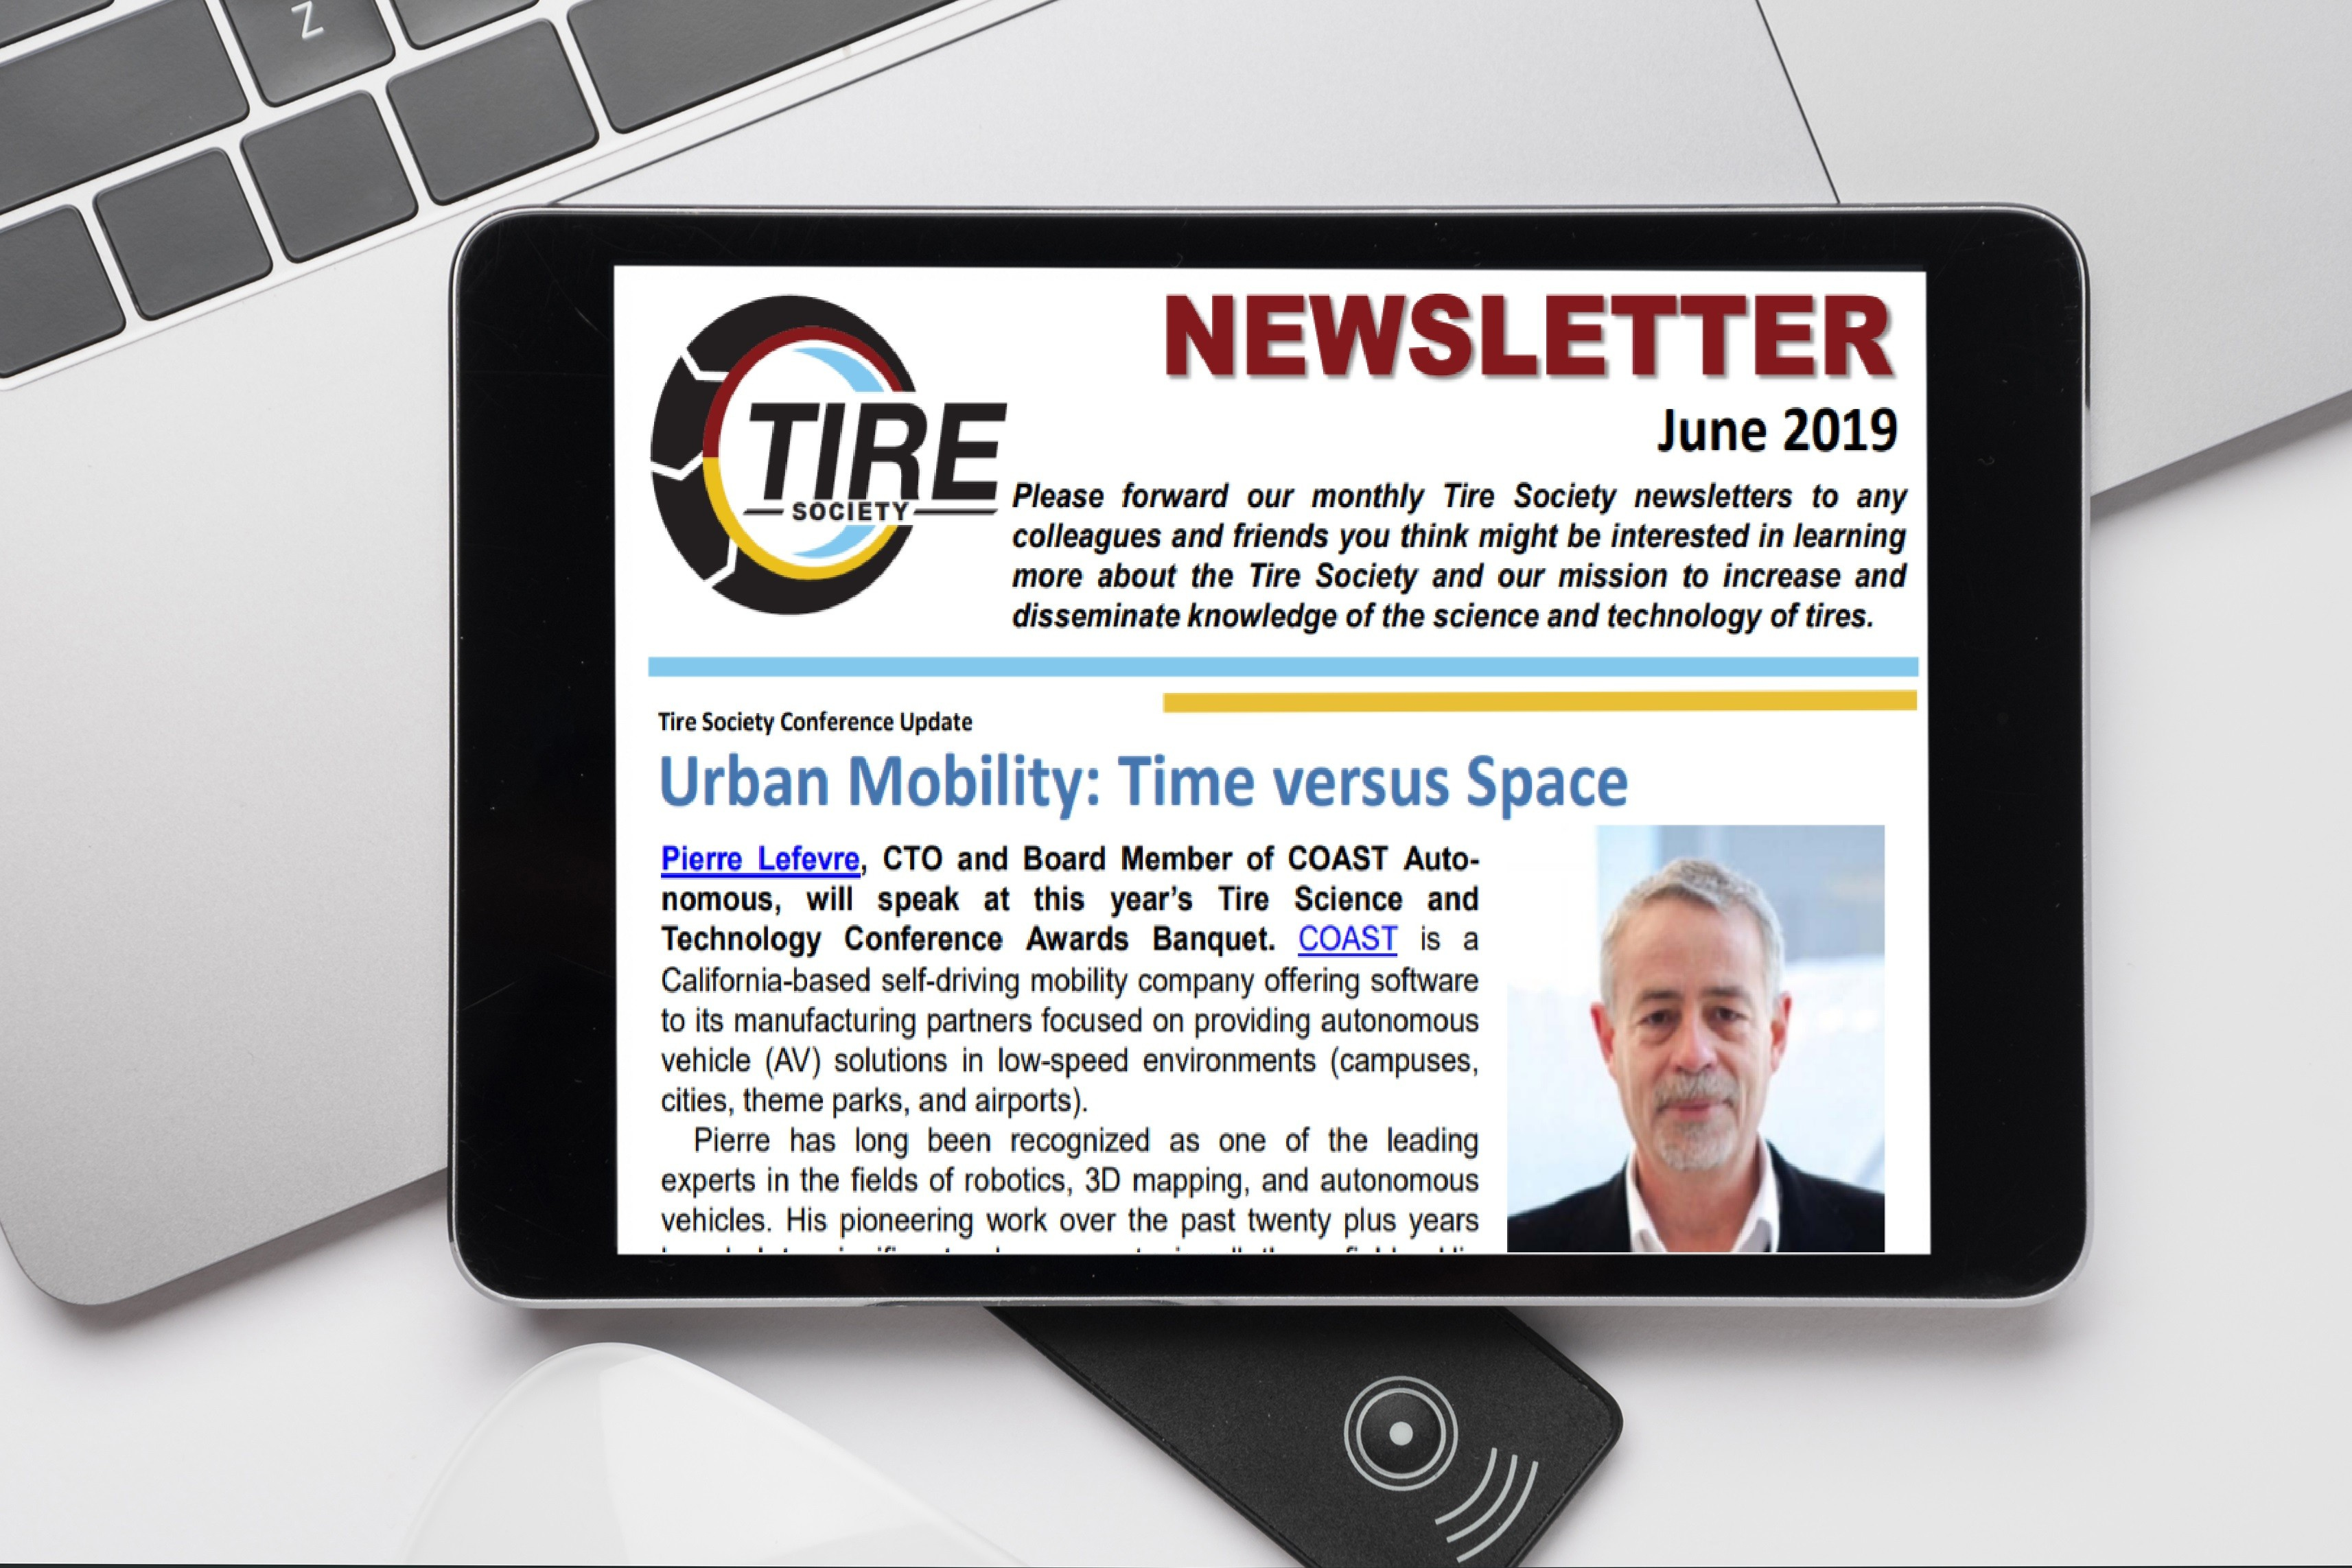 Tire Society Newsletter